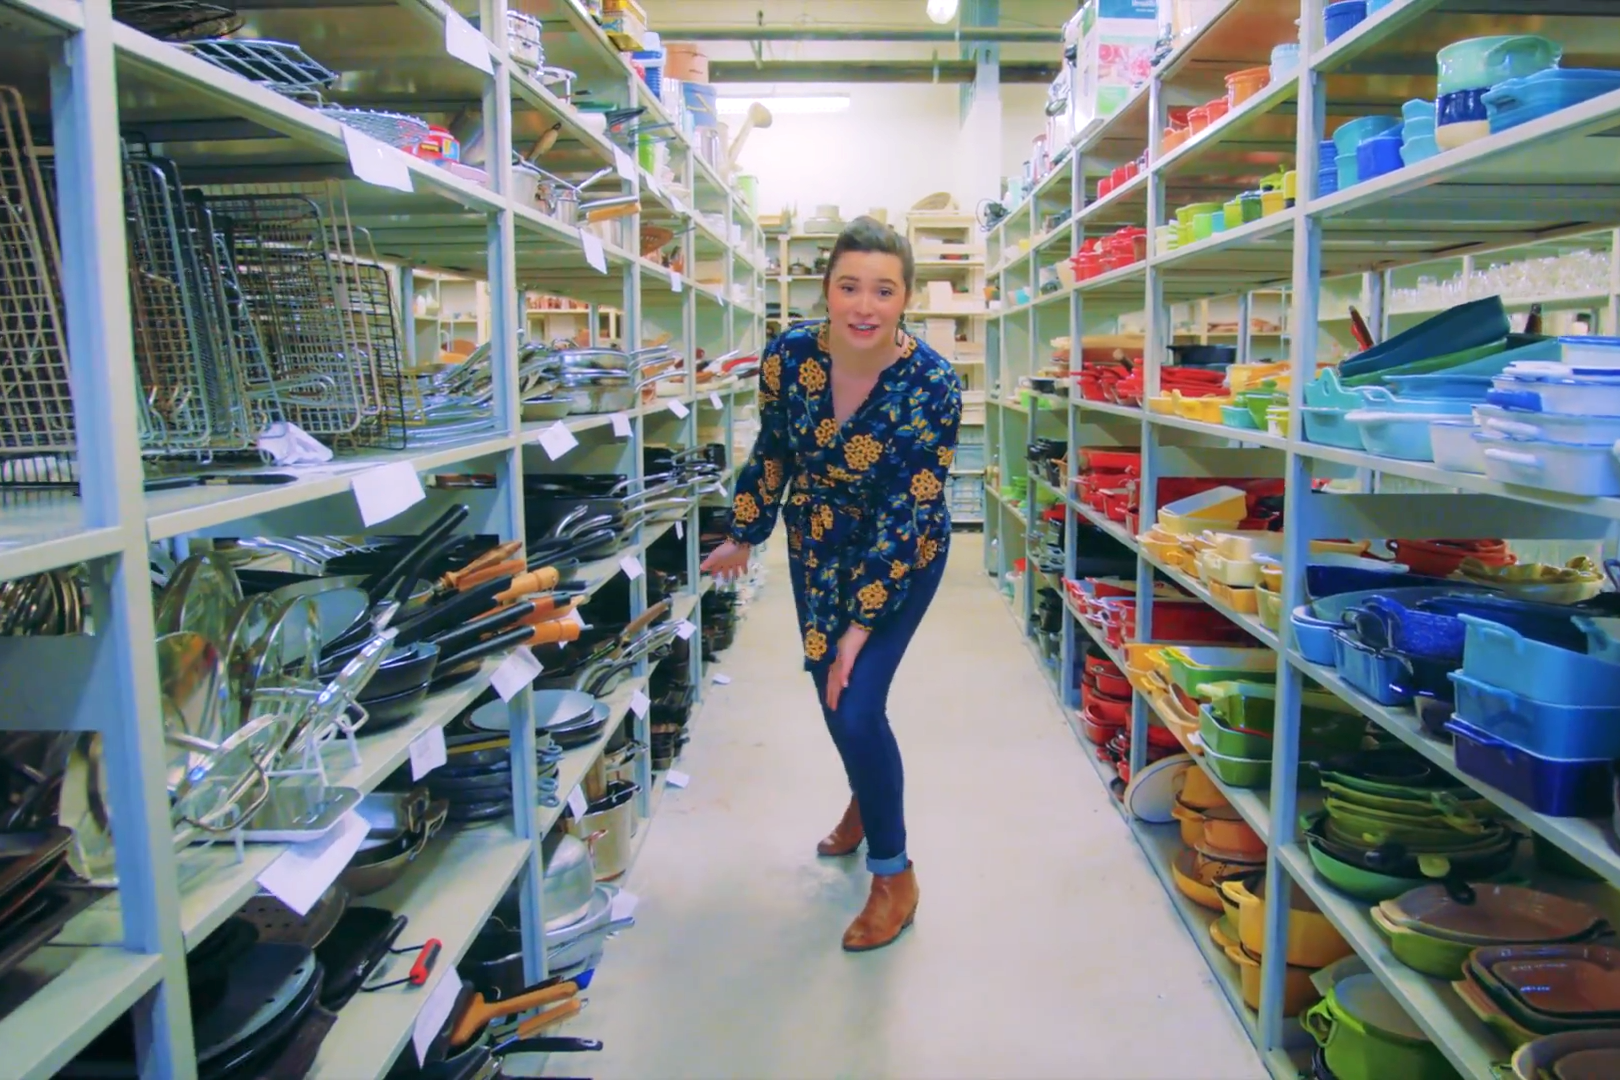 Go Behind The Scenes At <i>Southern Living Magazine</i>